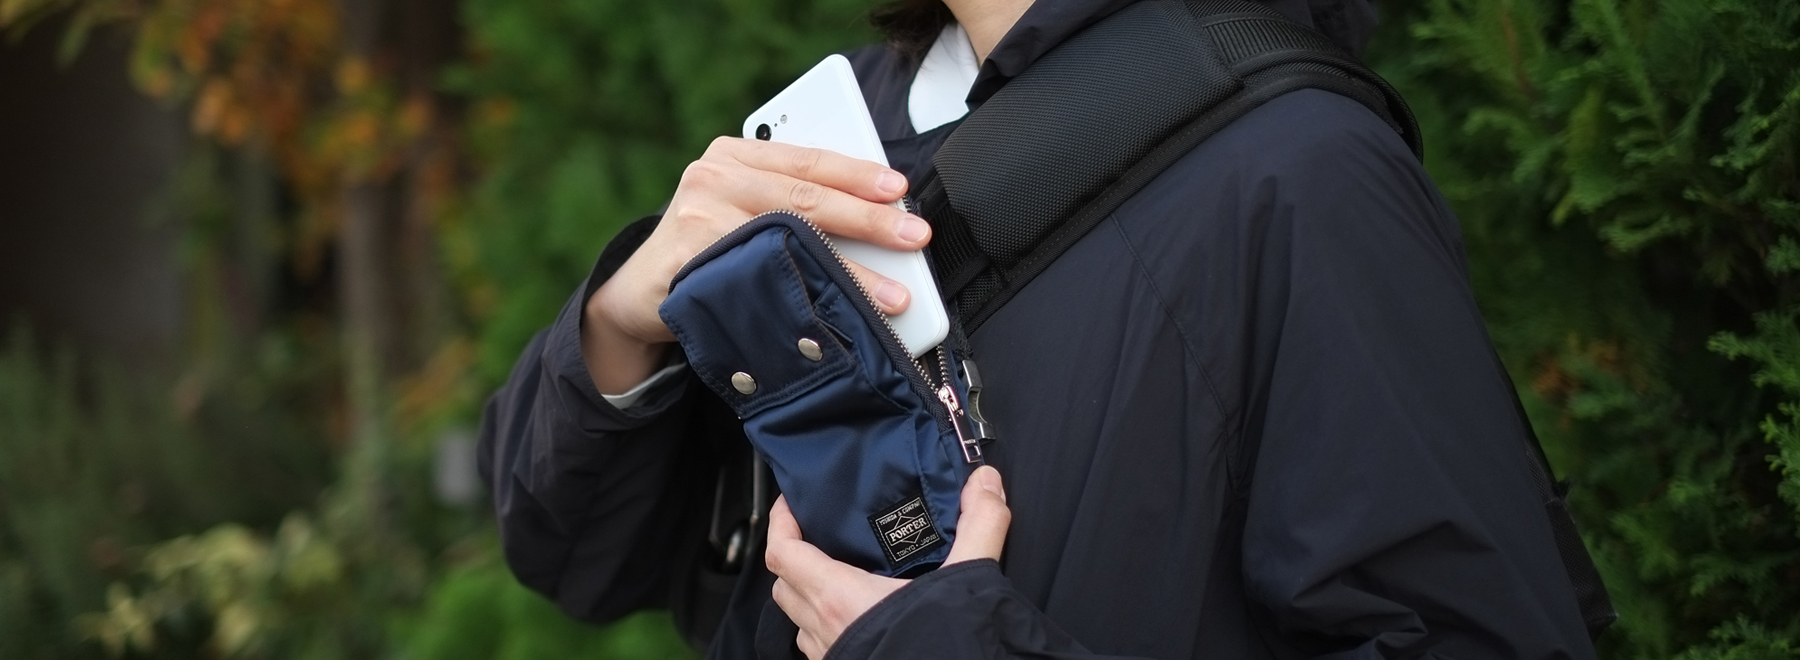 Mobile Pouch for Pixel ライフスタイルフォト